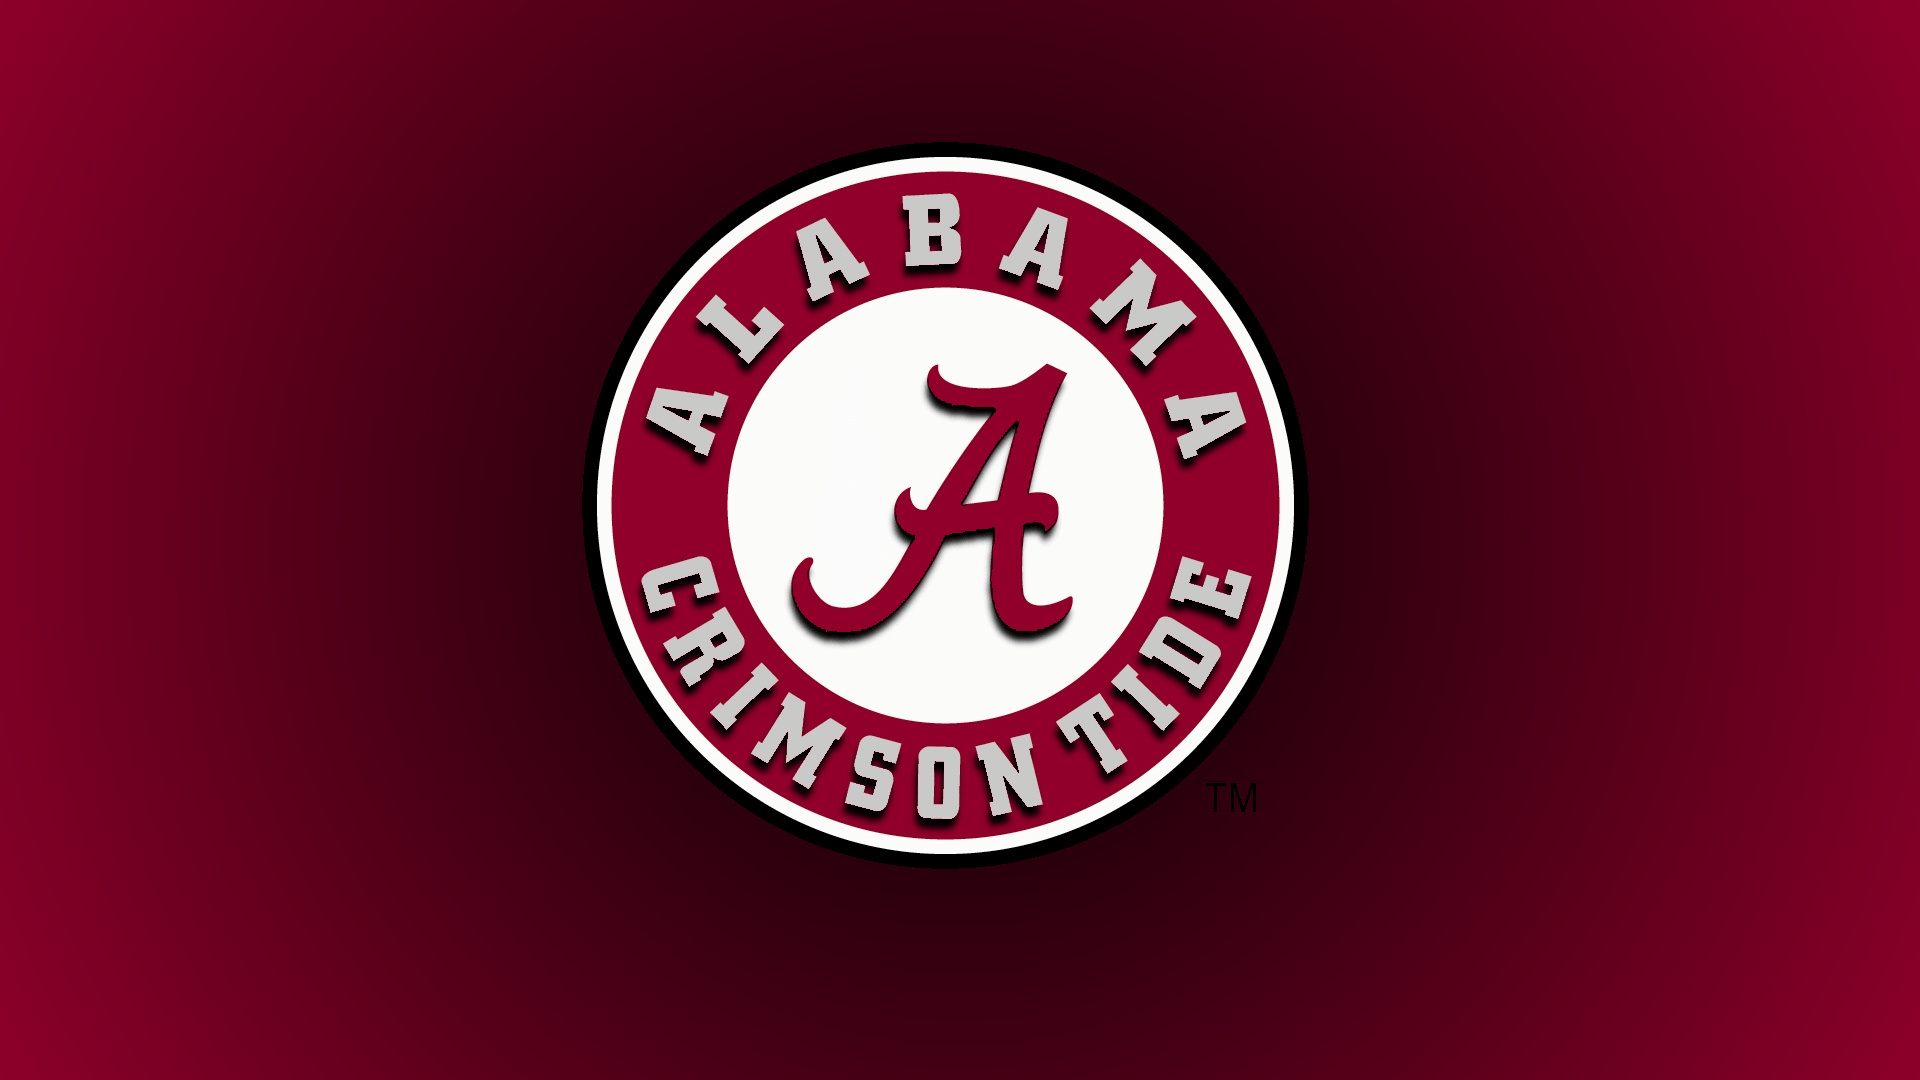 Gallery of crimson alabama roll tide logo 1920x1080